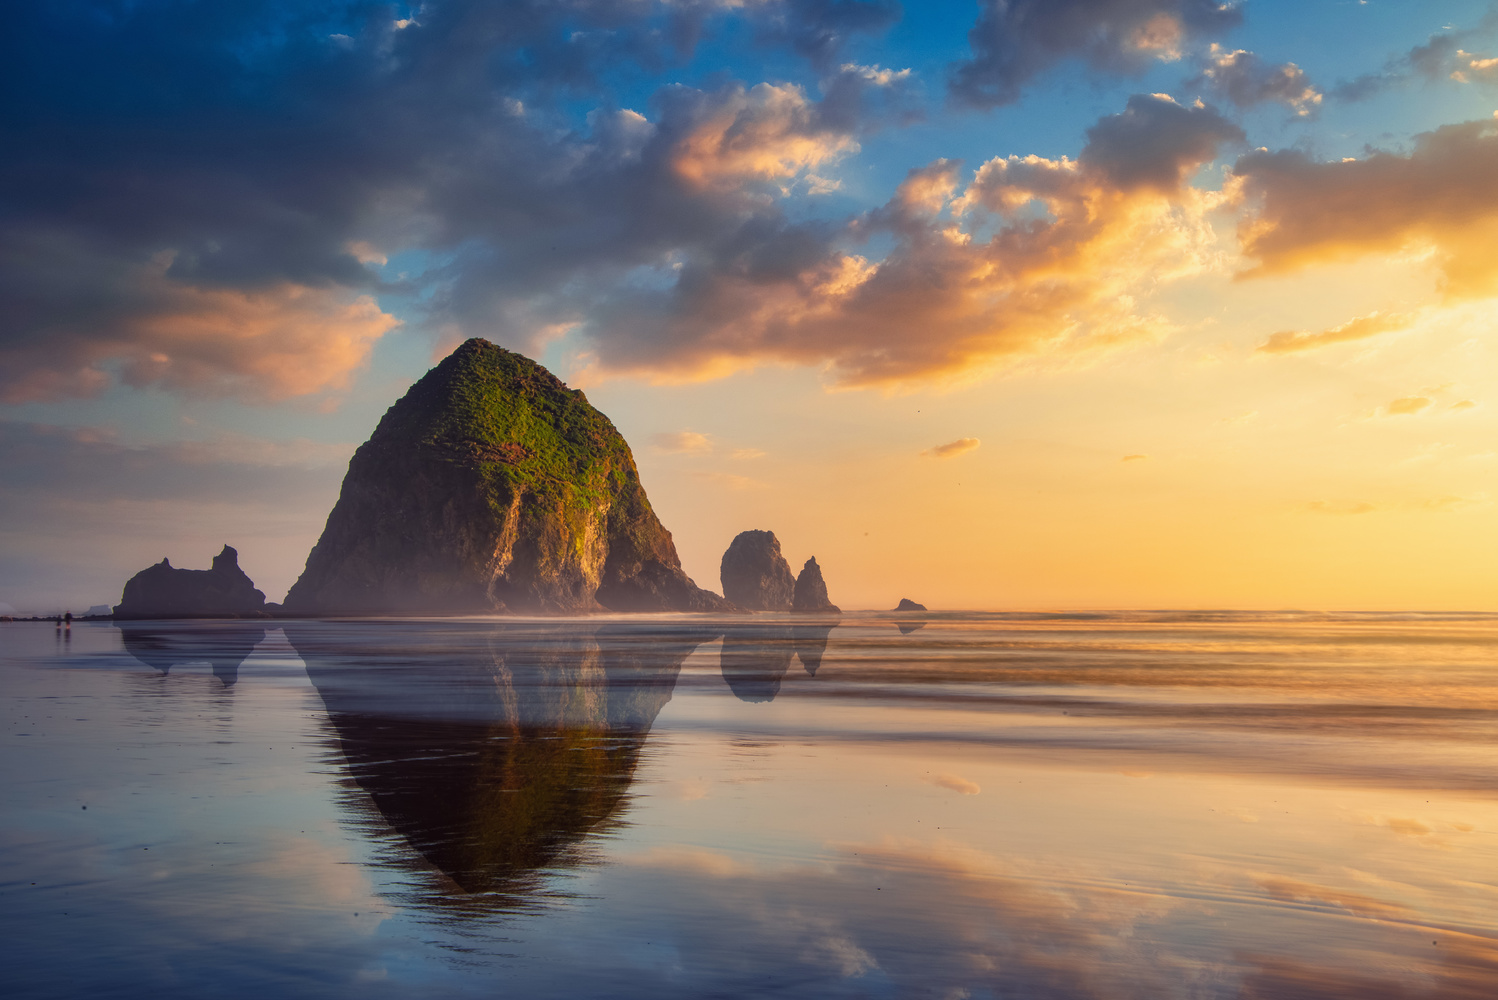 Sunset Reflections by Alex Hill